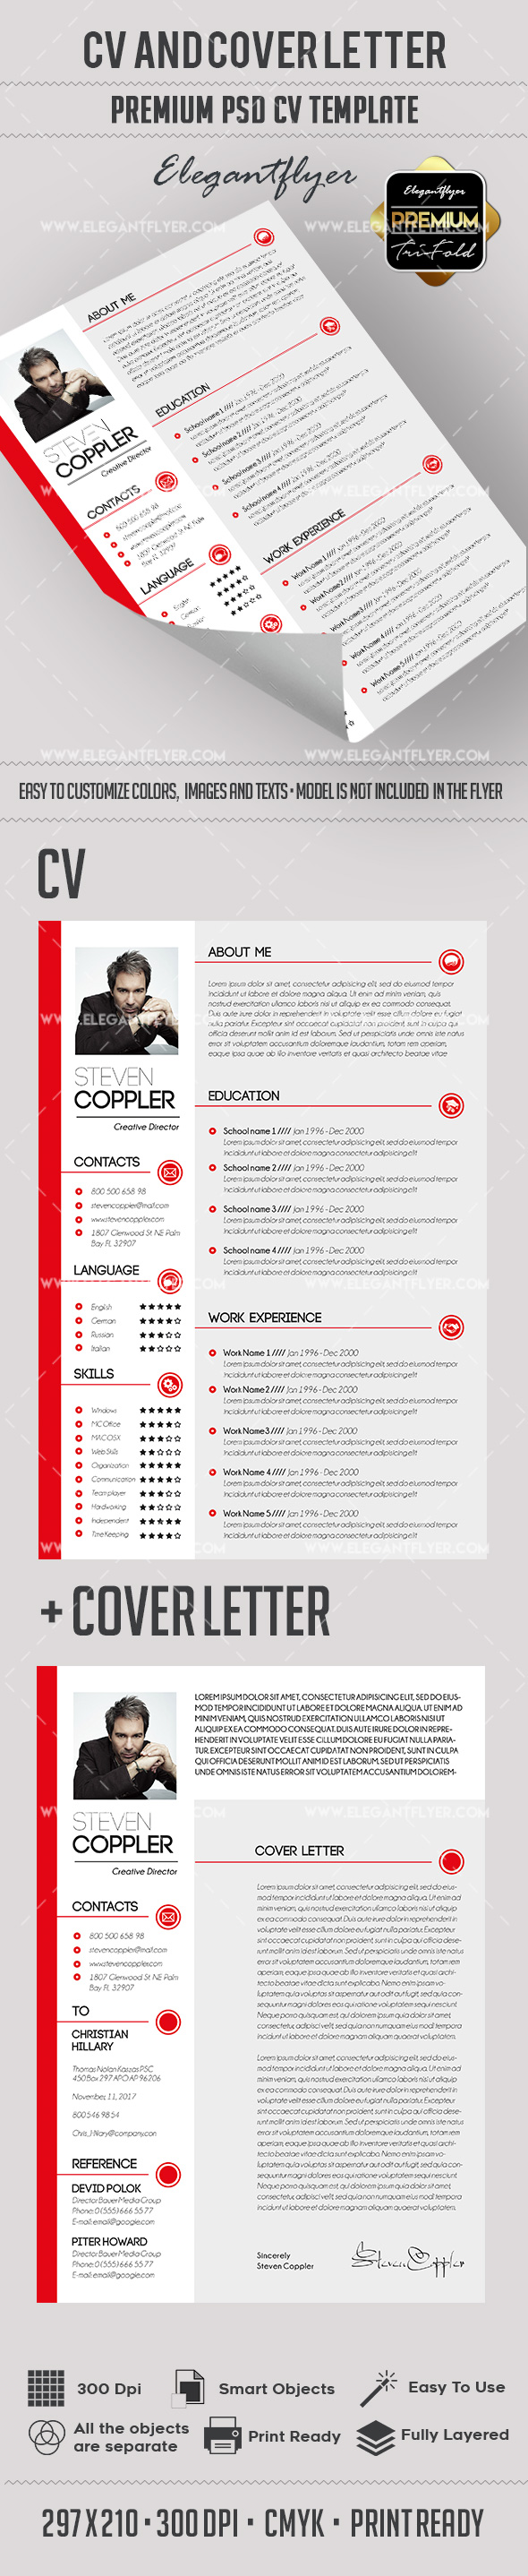 Finance Resume Template + CV and Cover Letter